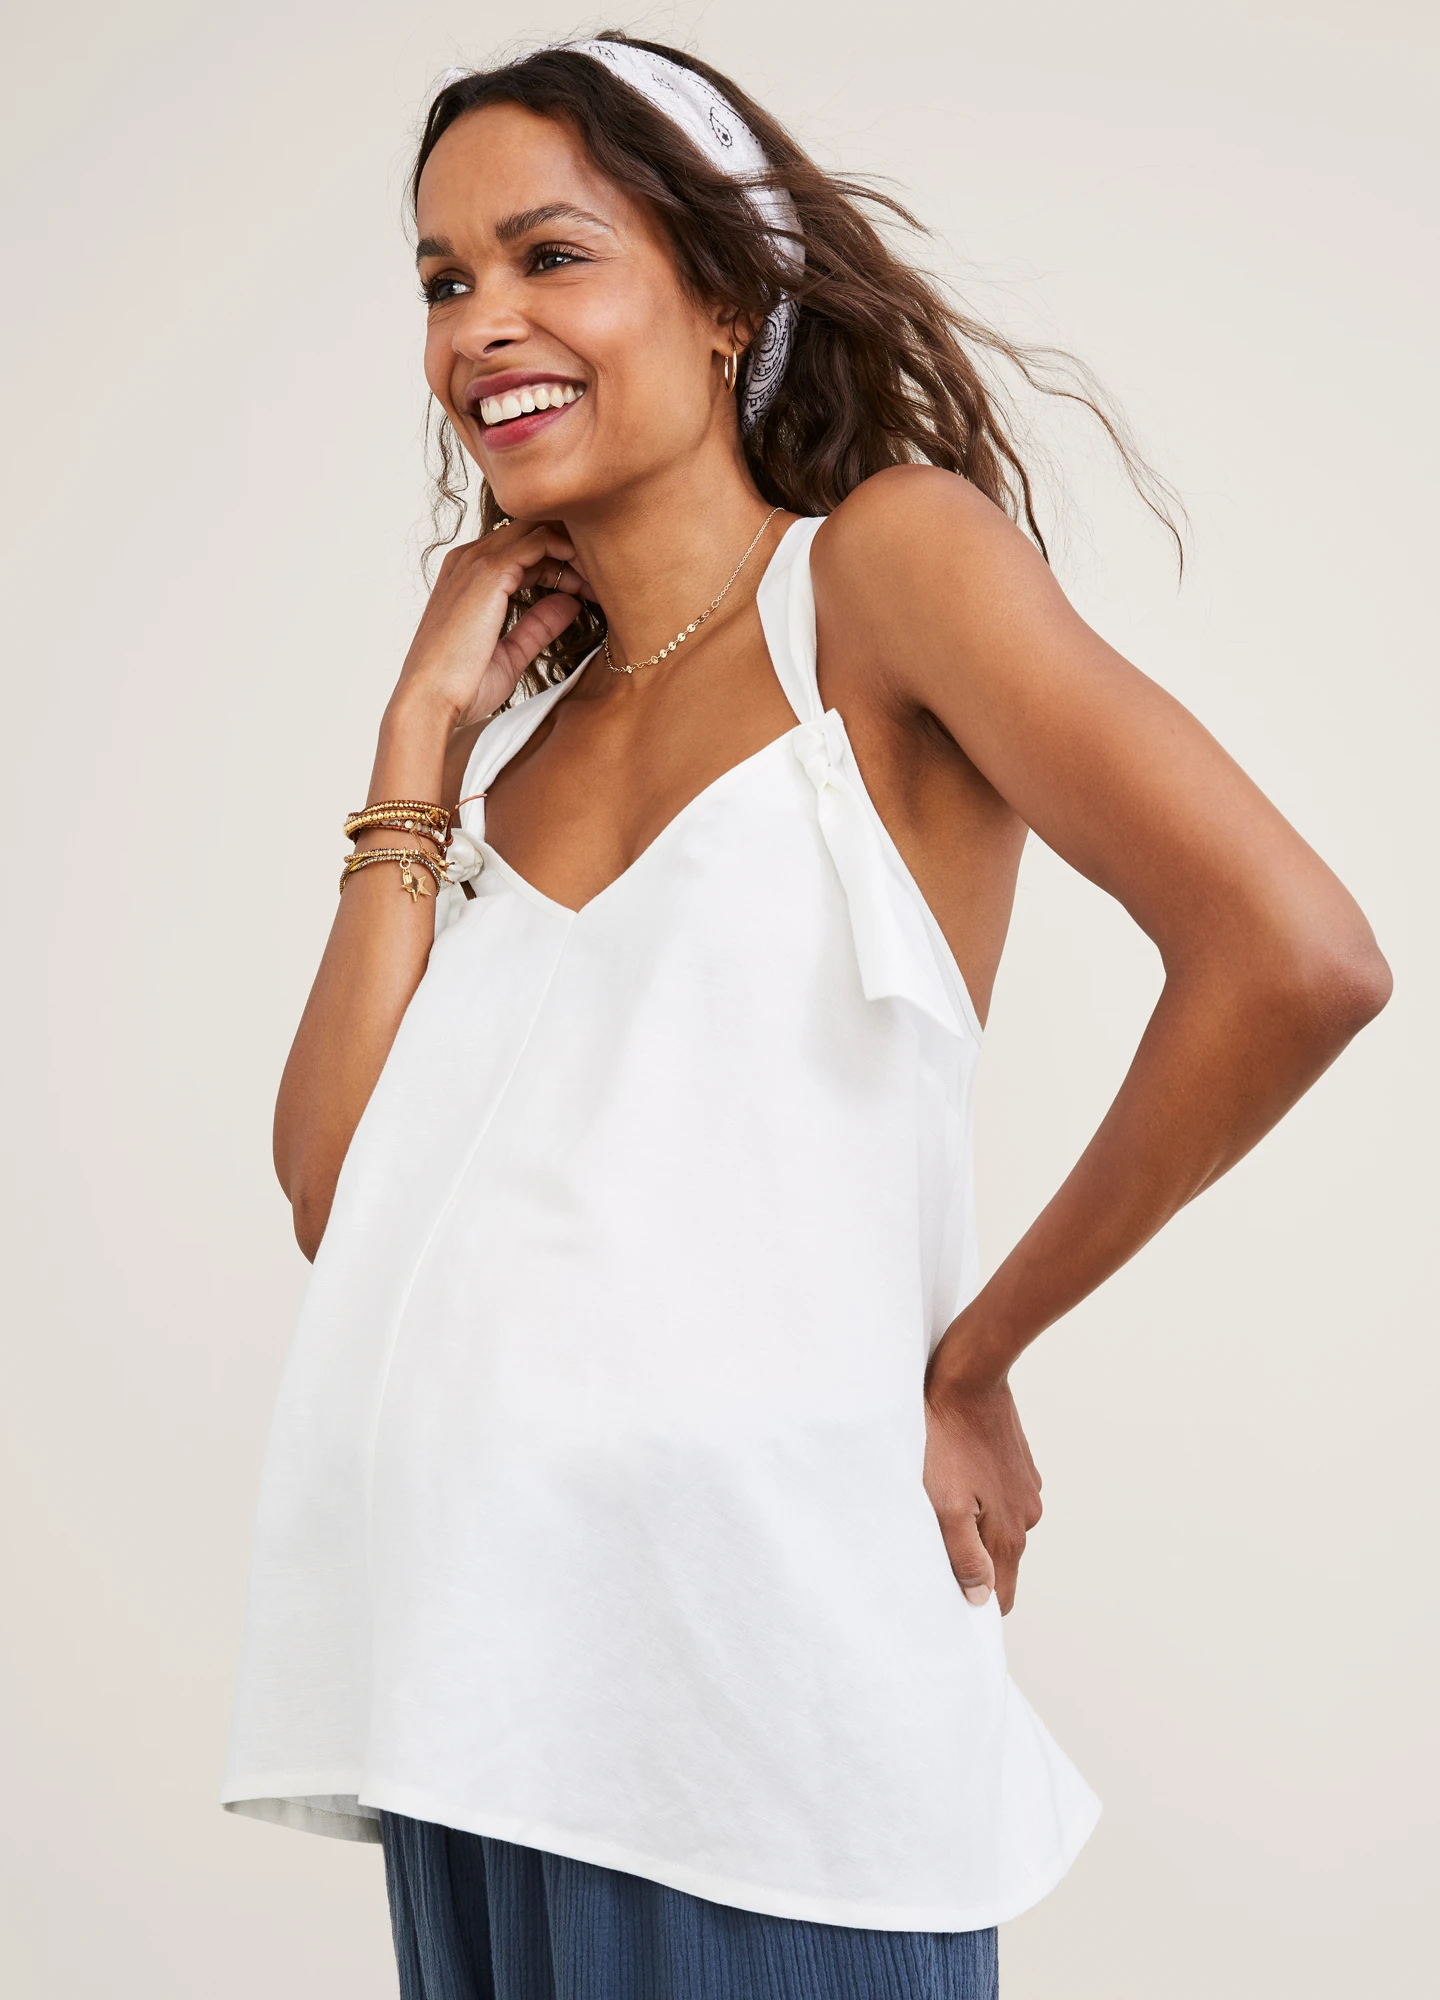 Third-trimester model wearing a white tank top